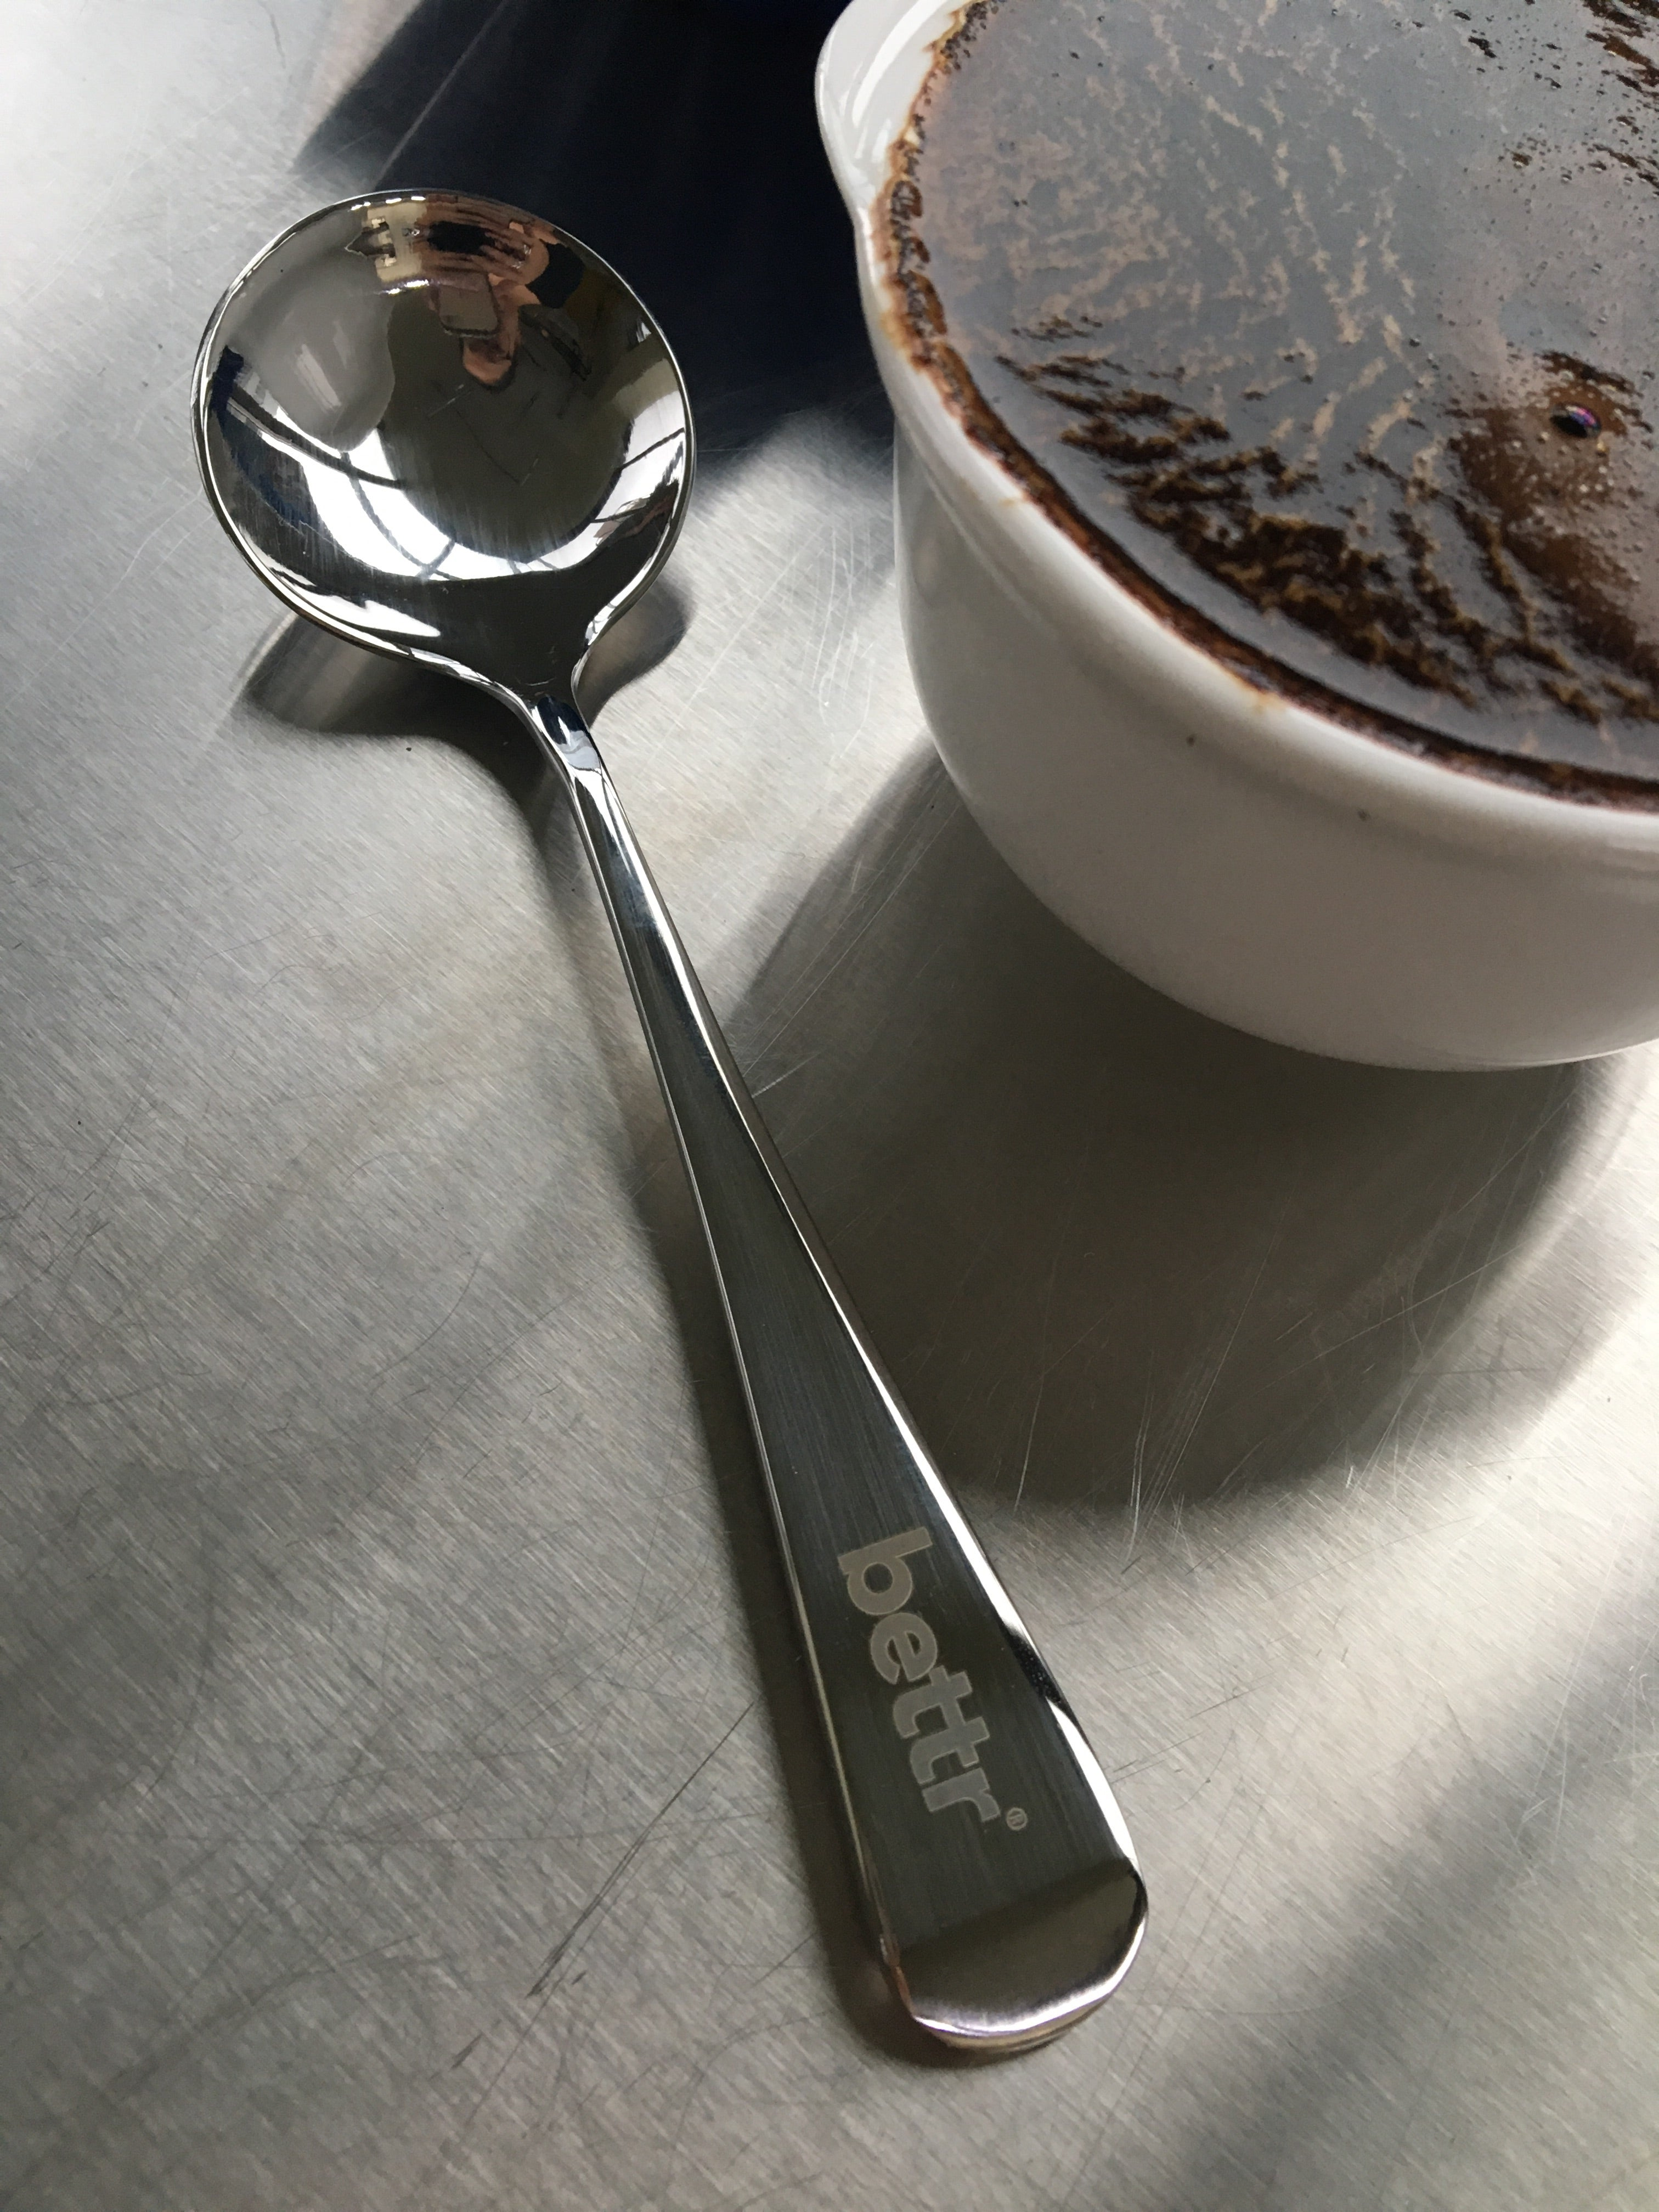 Stainless Steel Cupping Spoon